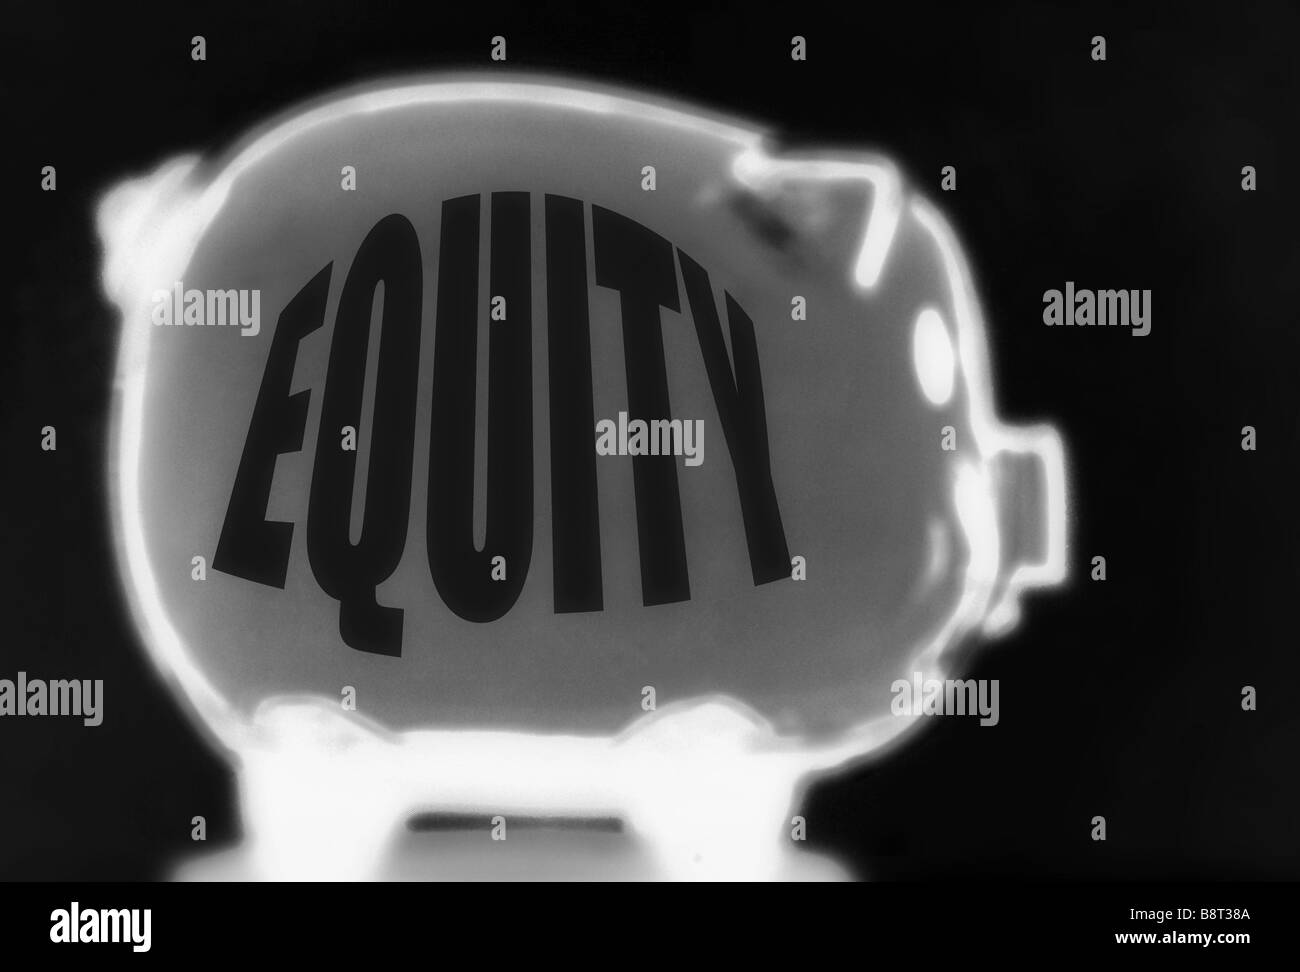 Negative Equity Concept using a empty Piggy Bank titled 'EQUITY' and the image produced as a negative - Stock Image